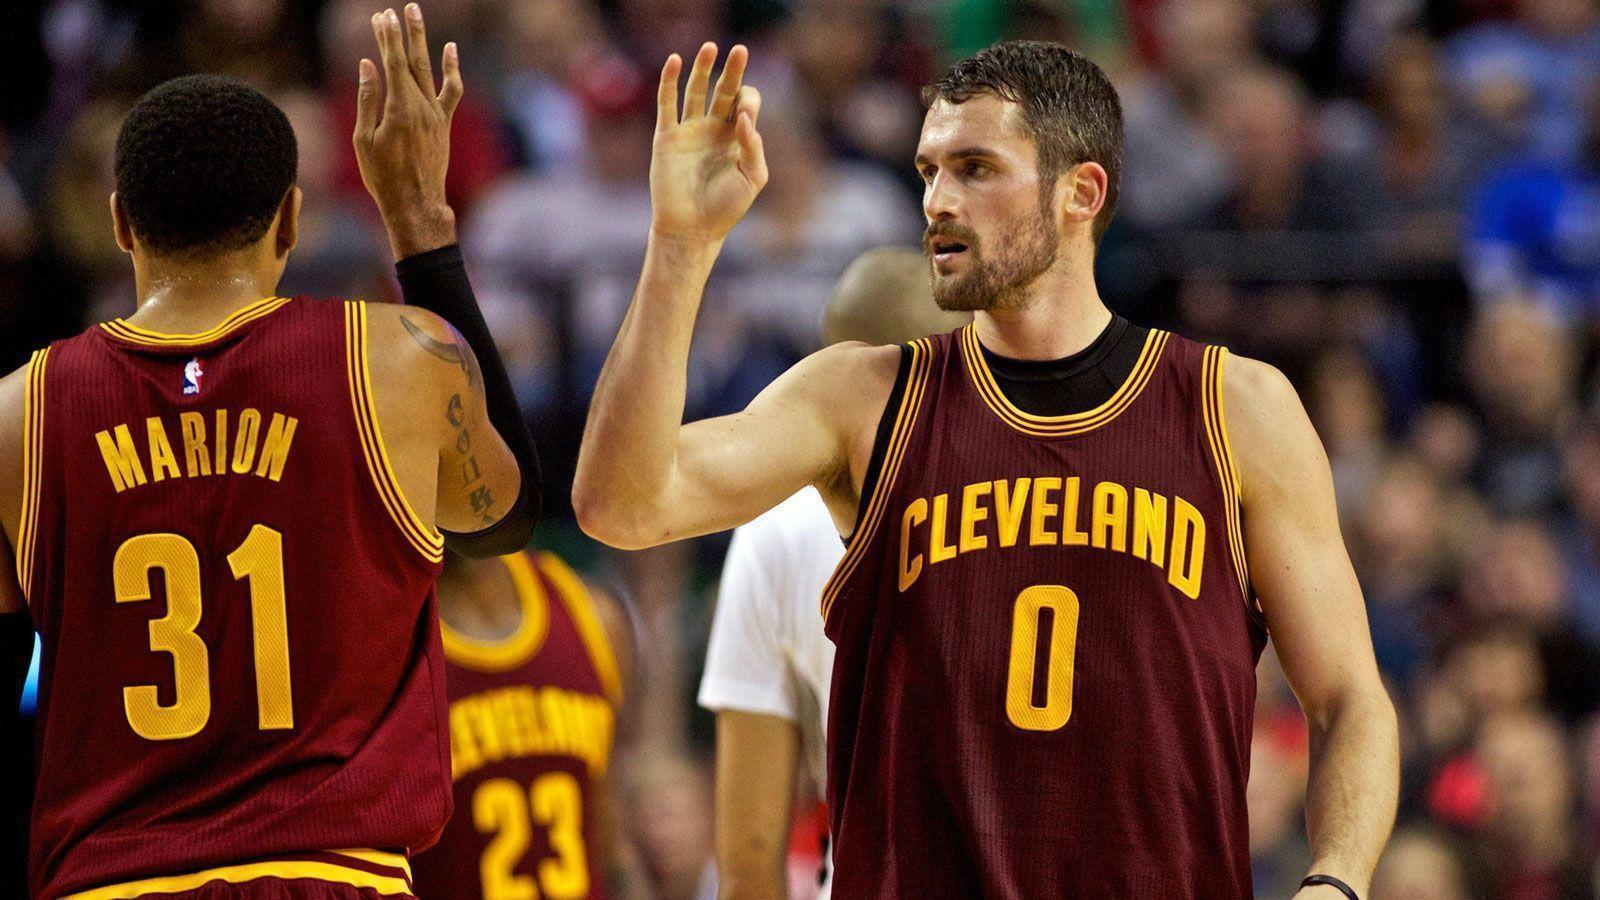 Kevin Love 2015 Wallpapers - Wallpaper Cave